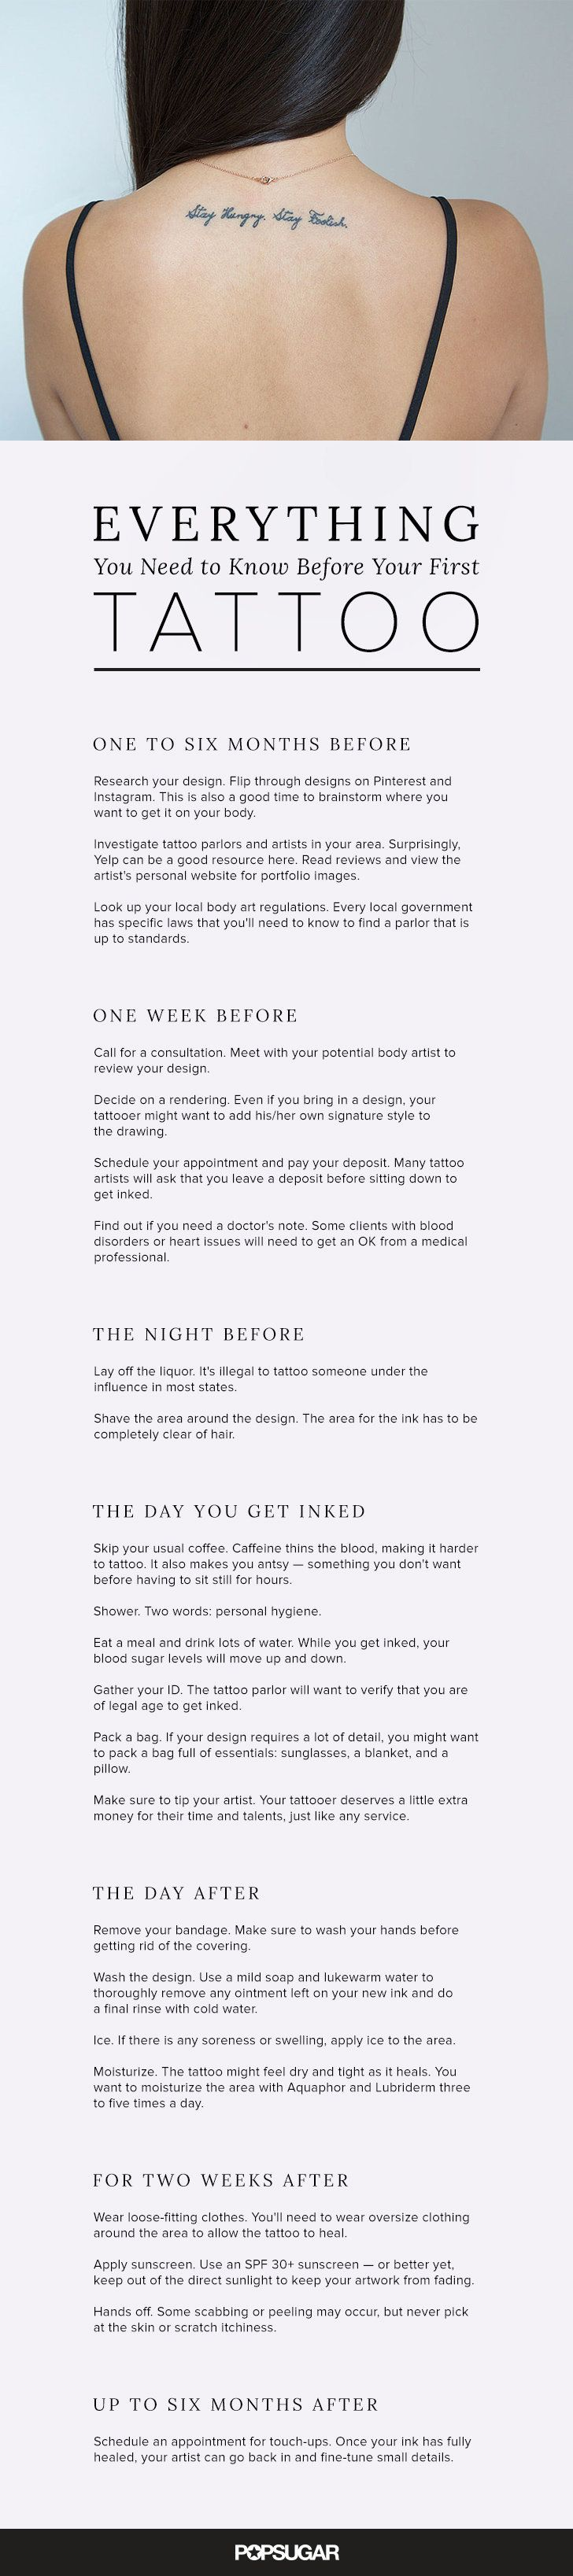 Thinking about getting your first tattoo? Any ink enthusiast will tell you that there are a lot of rules to consider — it's not something you do on a whim. Getting the exact artwork you want is a process that starts long before you arrive at the parlor. So we've created this comprehensive calendar. It includes everything you need to know: tips for finding the right artist, safety measures to follow, and aftercare instructions.